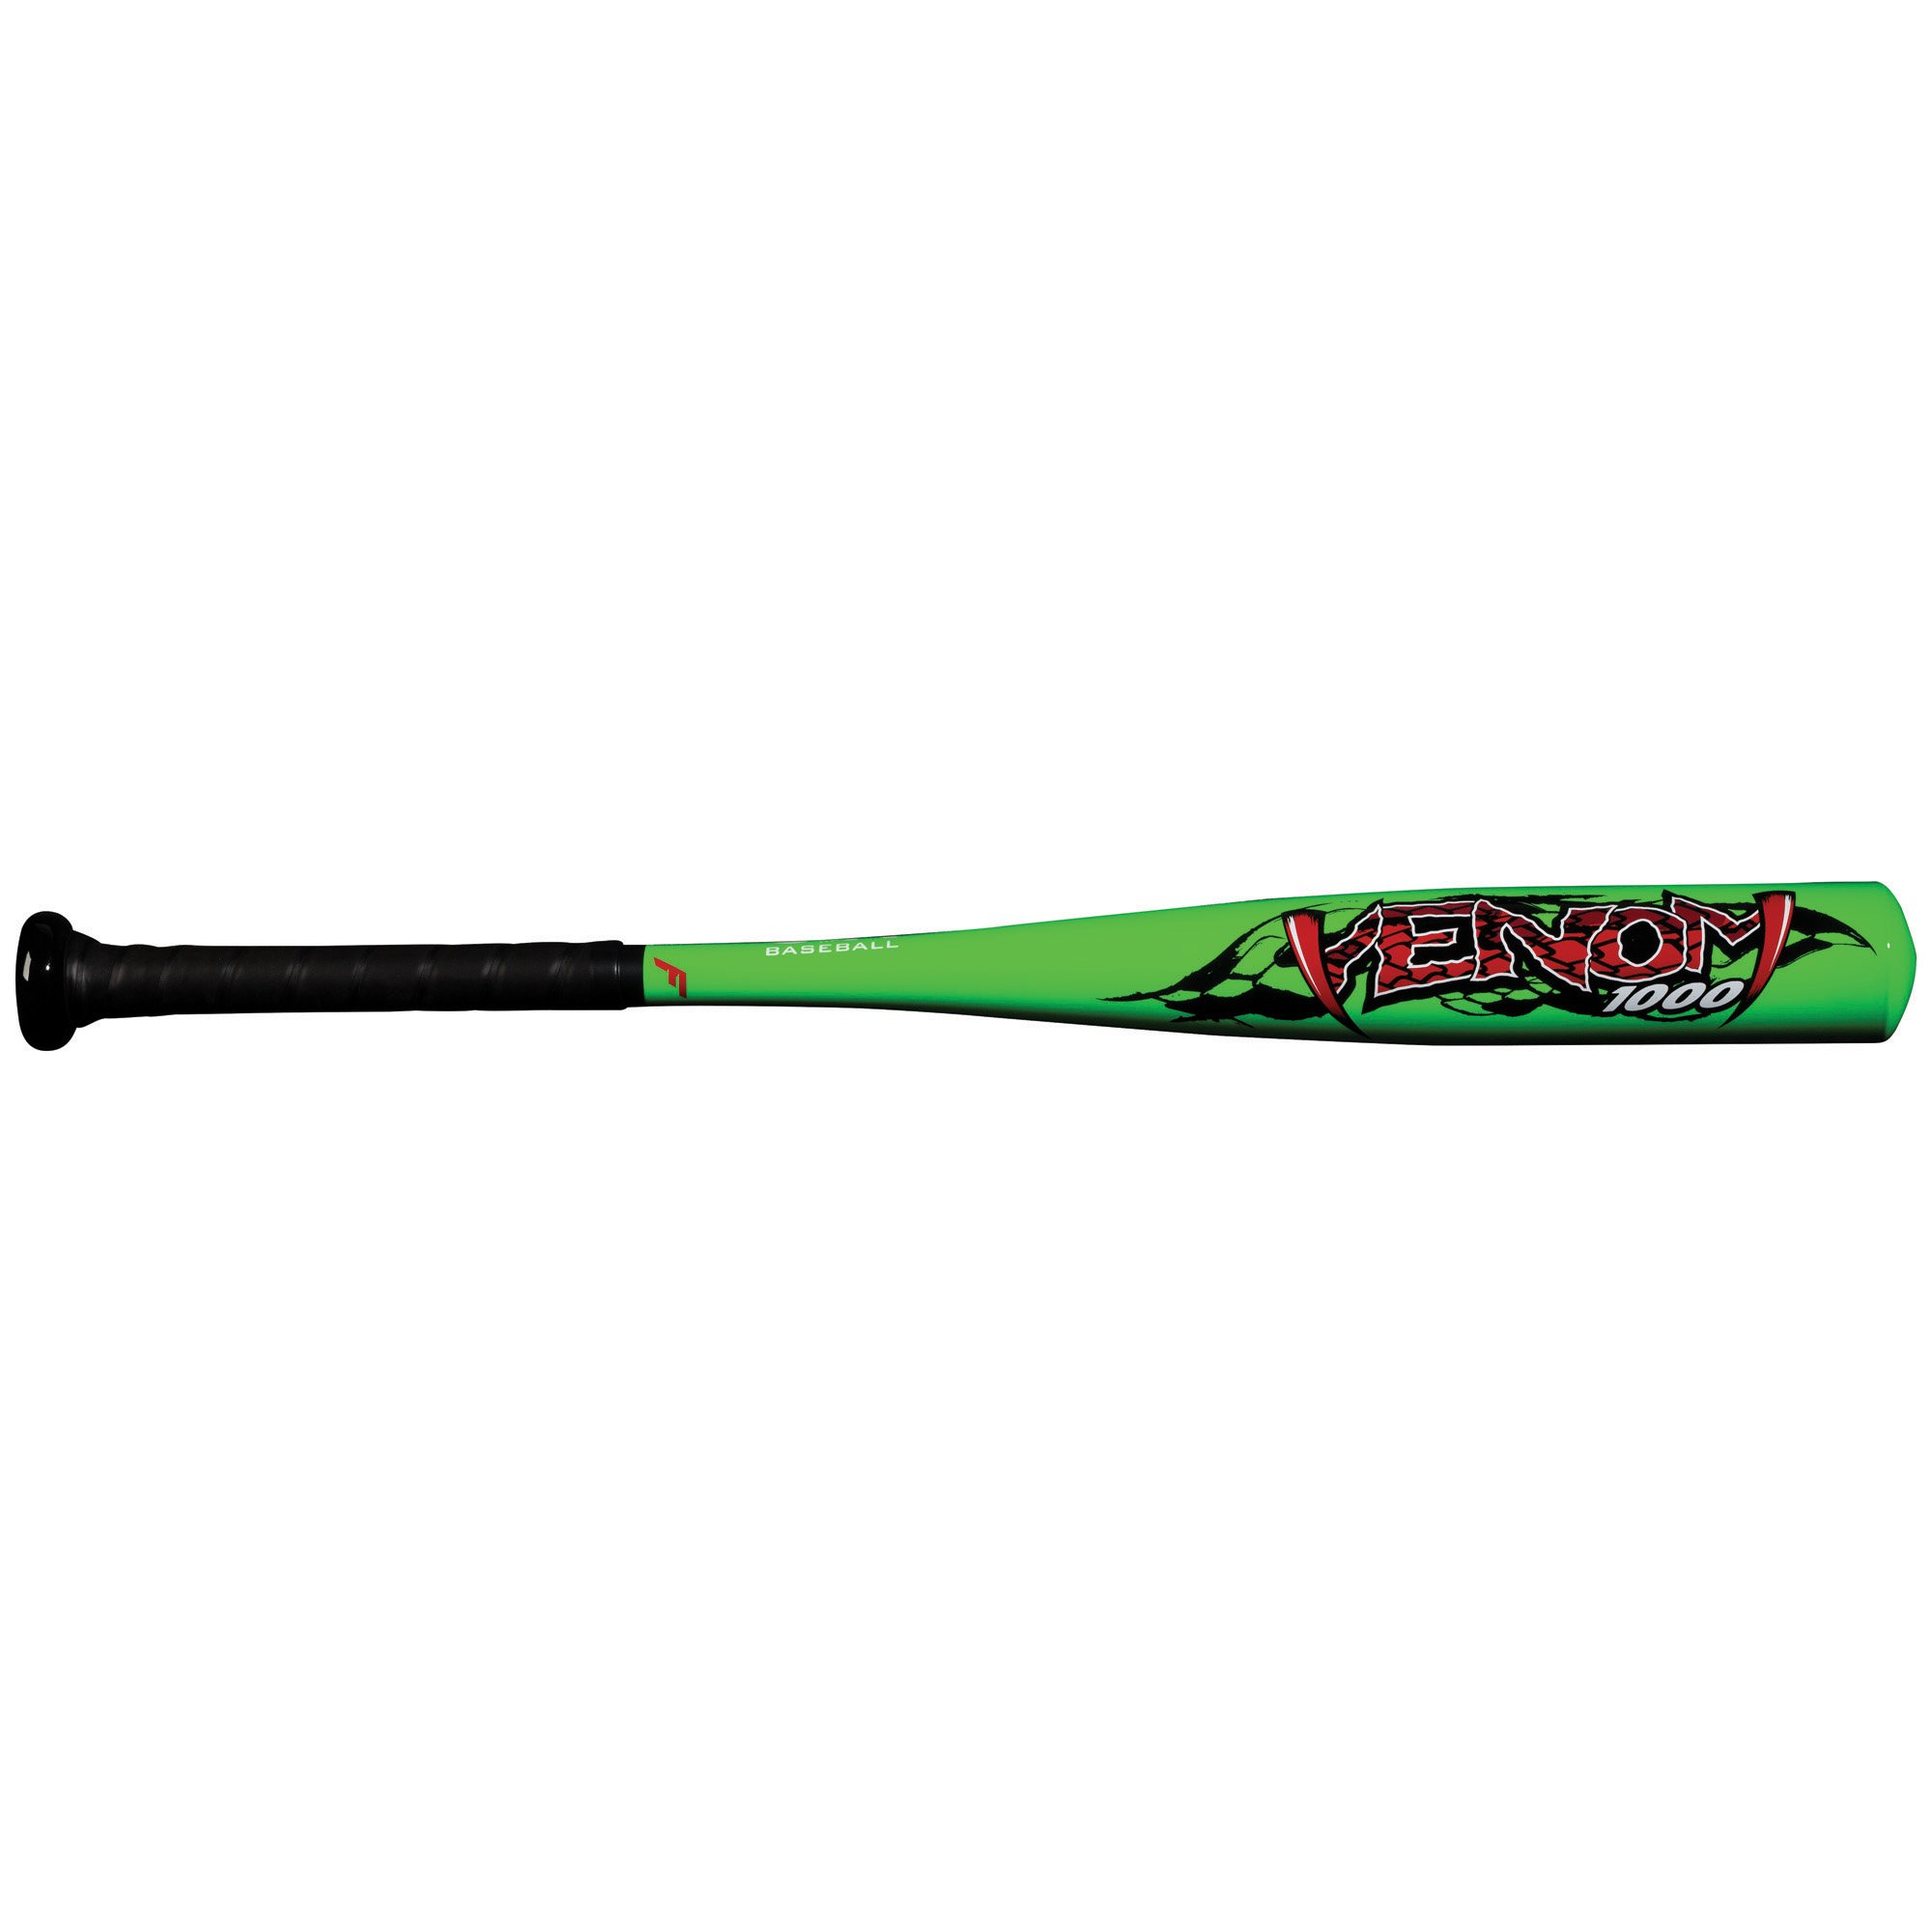 Franklin Sports Venom 1000 Official Teeball Bat - 26'' (-10) - Perfect for Youth Baseball and Teeball by Franklin Sports (Image #2)